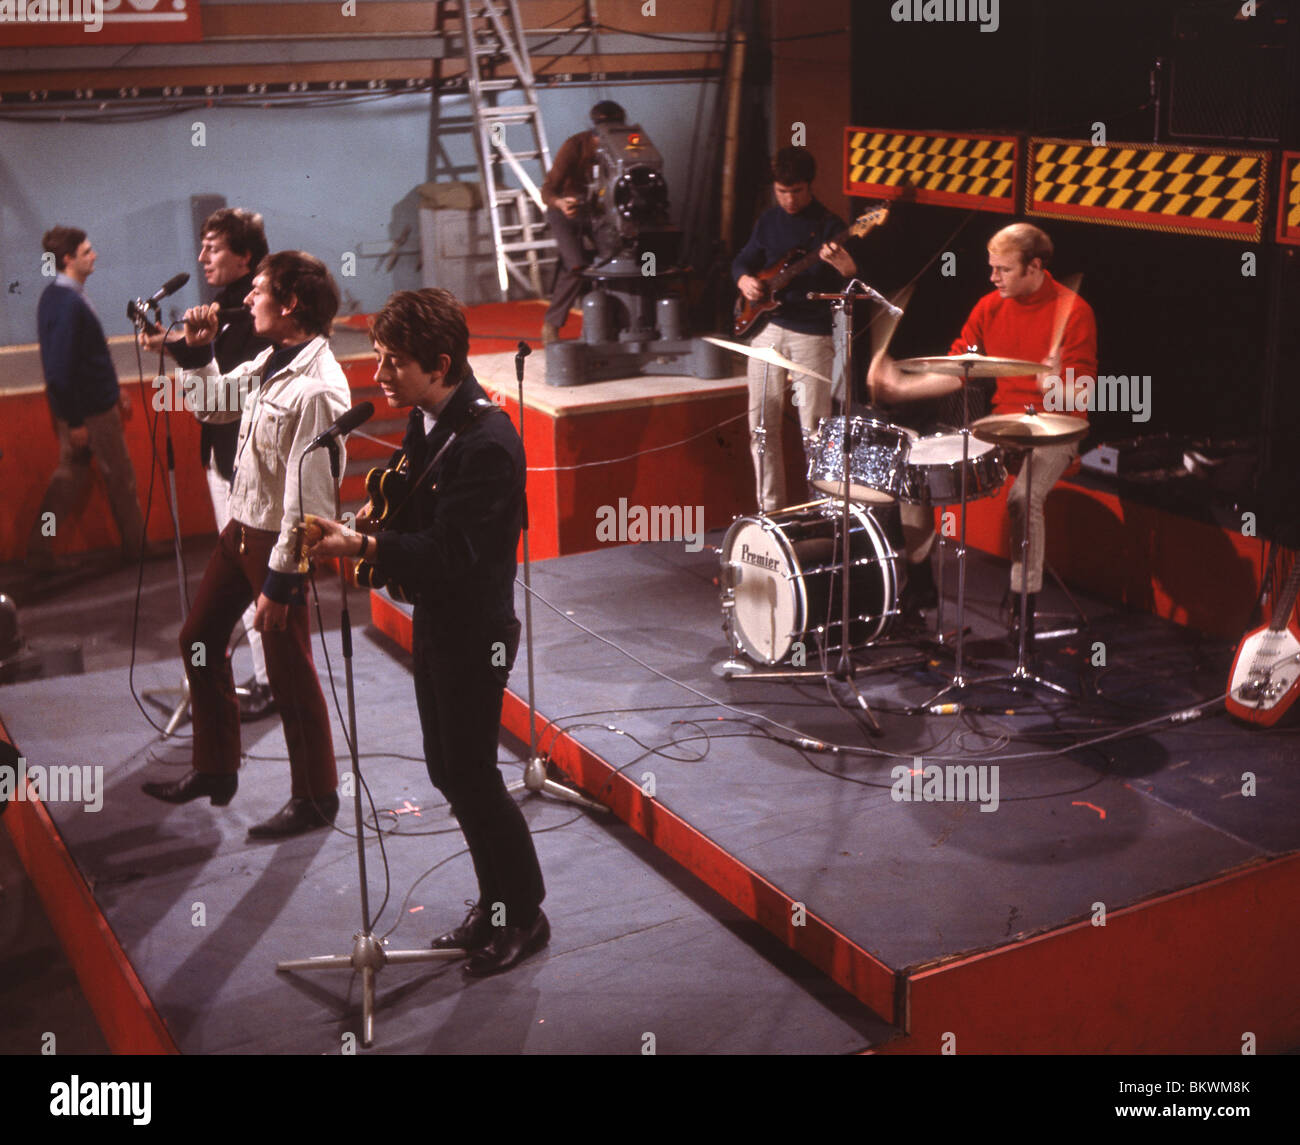 https://c8.alamy.com/comp/BKWM8K/hollies-on-readysteadygo-in-1964-for-line-up-names-see-description-BKWM8K.jpg